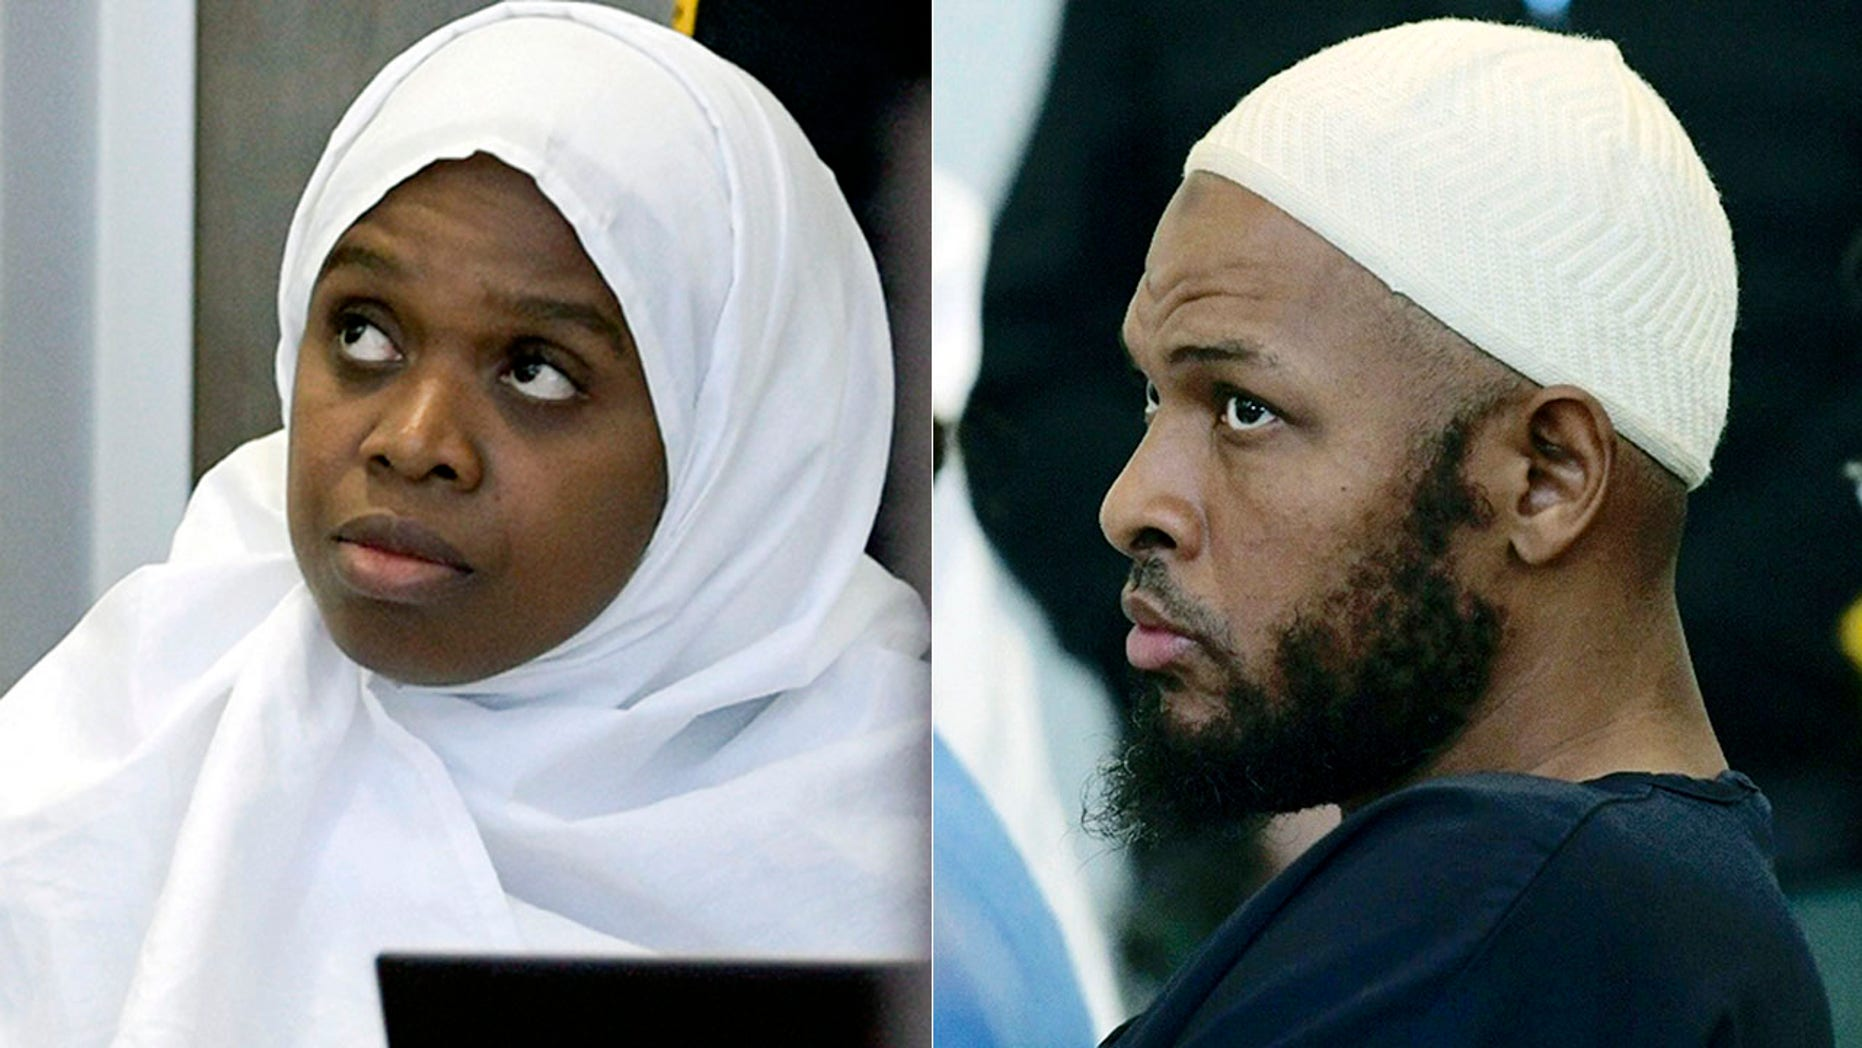 Jany Leveille, left, and Siraj Ibn Wahhaj , listening during a detention hearing in a Taos, N.M. court earlier this month.